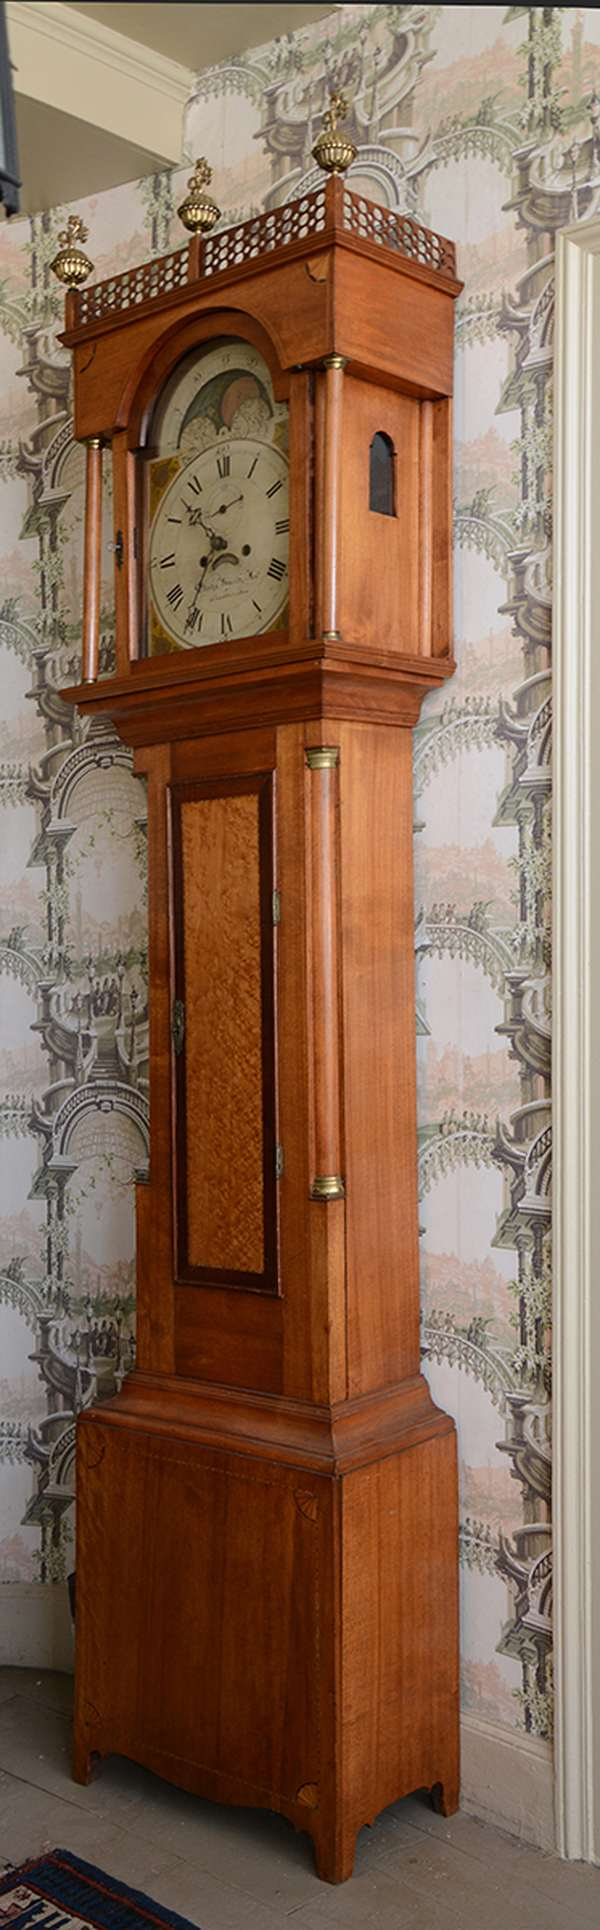 """A fine Federal New Hampshire grandfather clock birch case with birdseye and mahogany banded inlaid door, checkered and inlaid quarter fans, brass works dial signed Elisha Smith, Sanbornton, NH with period brass finials, 91""""H"""